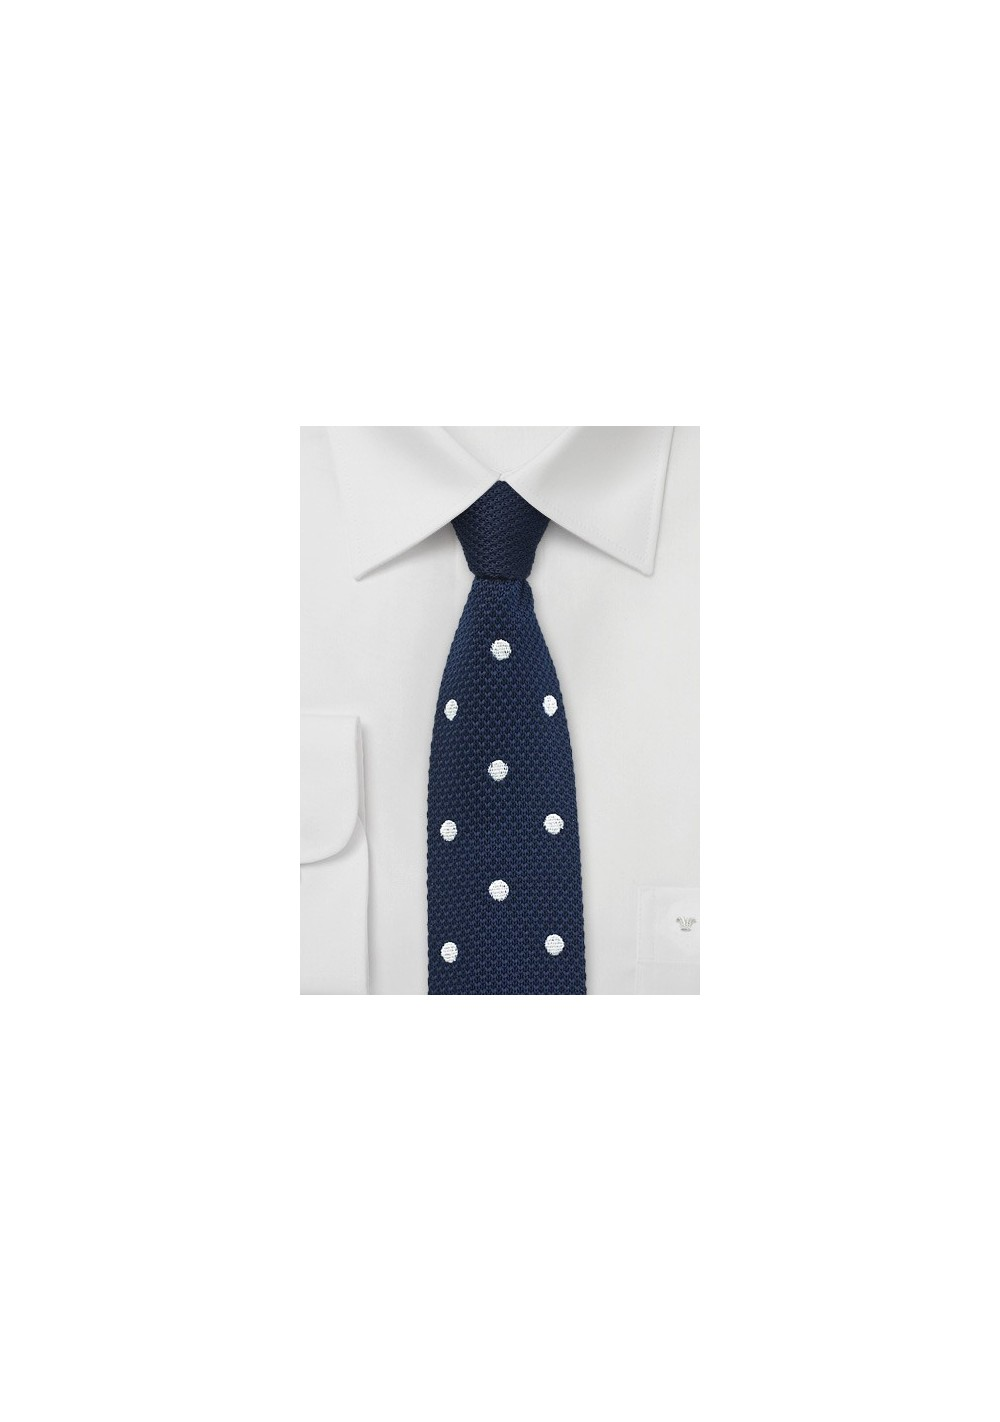 Navy Knit Tie with White Polka Dots